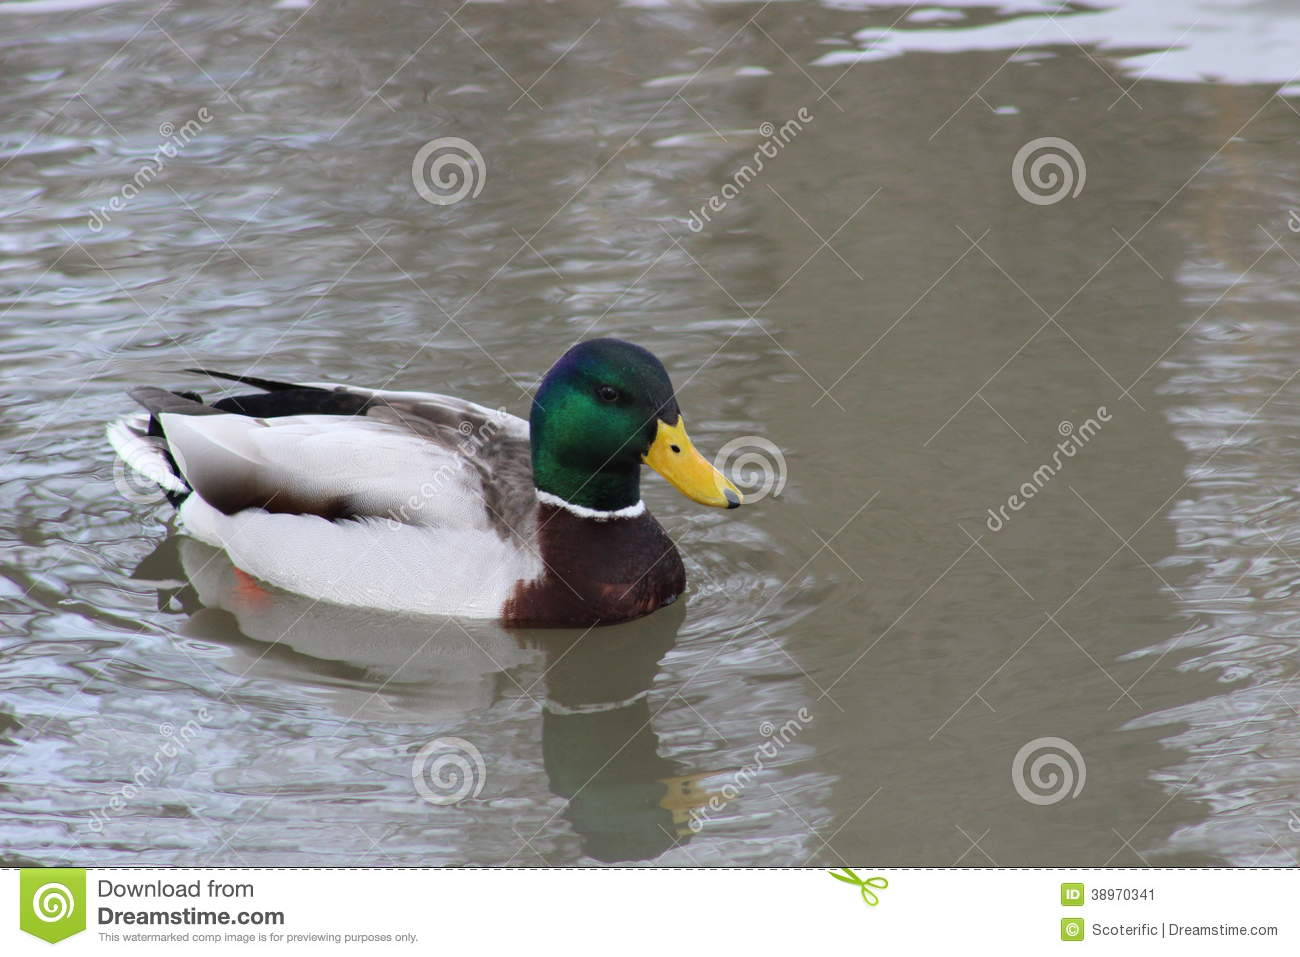 Duck In Water Stock Photo - Image: 38970341